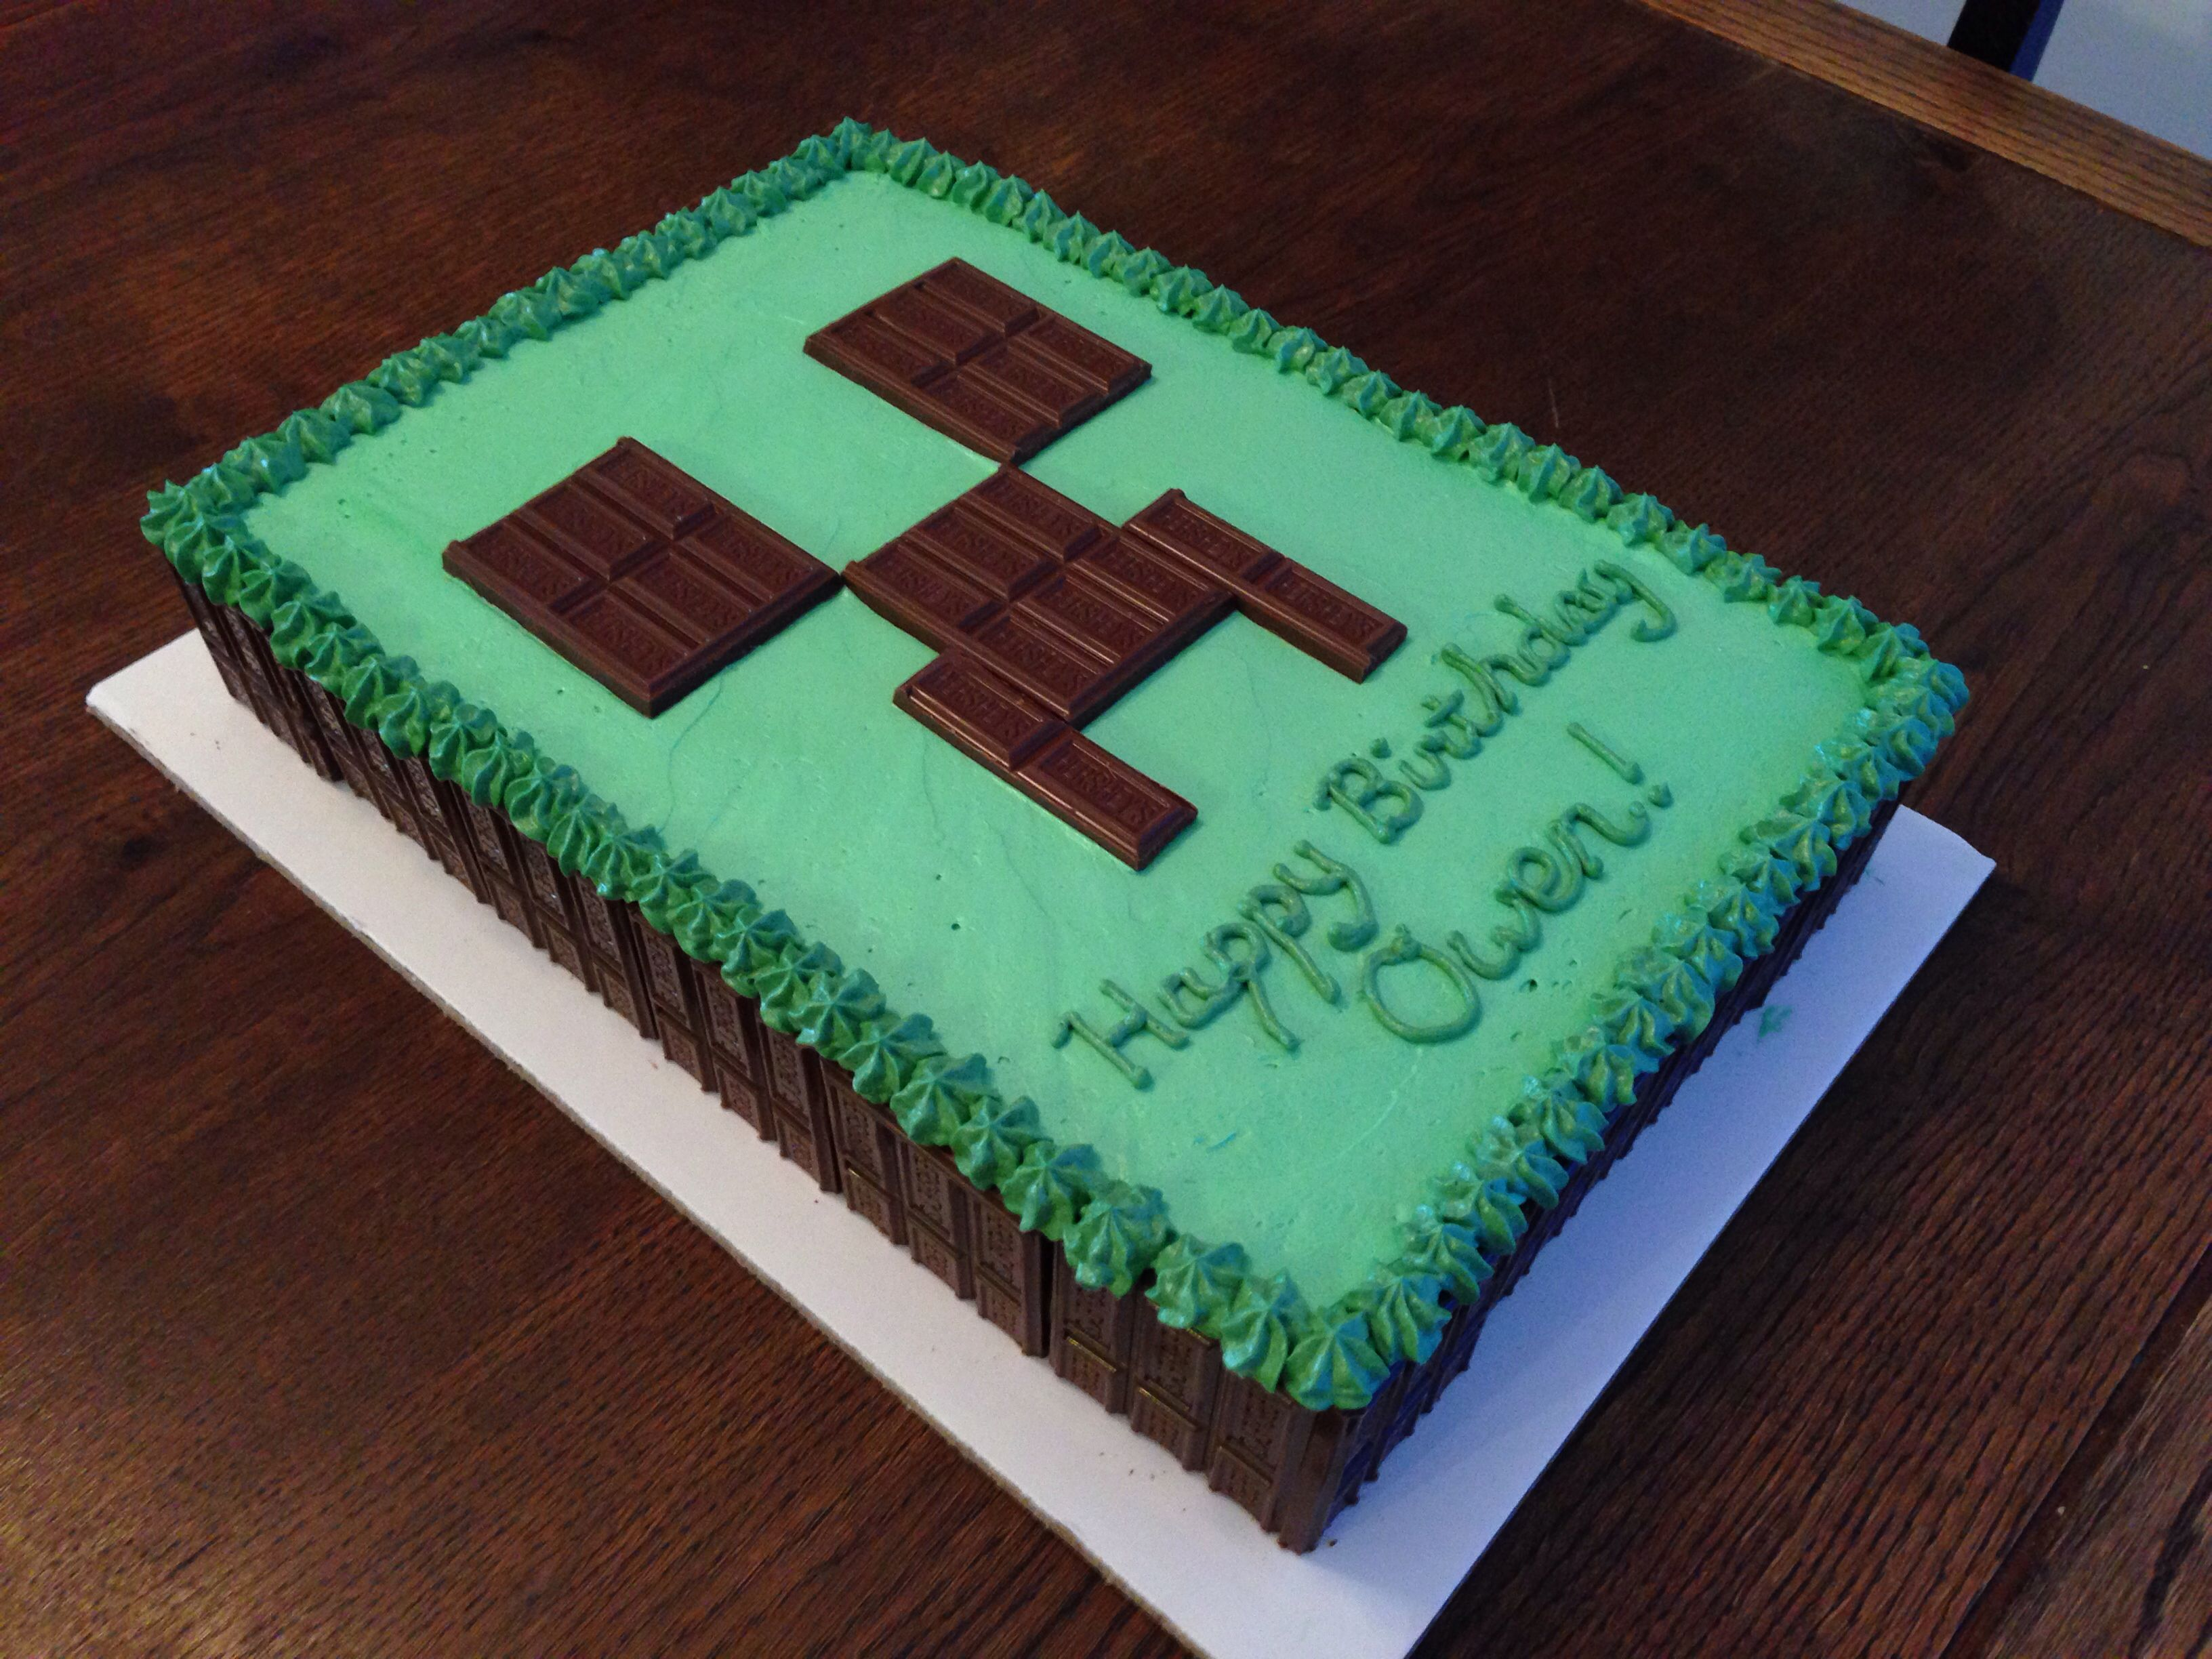 Minecraft Creeper Cake Using Hershey Bars For Creeper Face And Cake Sides Minecraft Birthday Cake Minecraft Birthday Creeper Cake